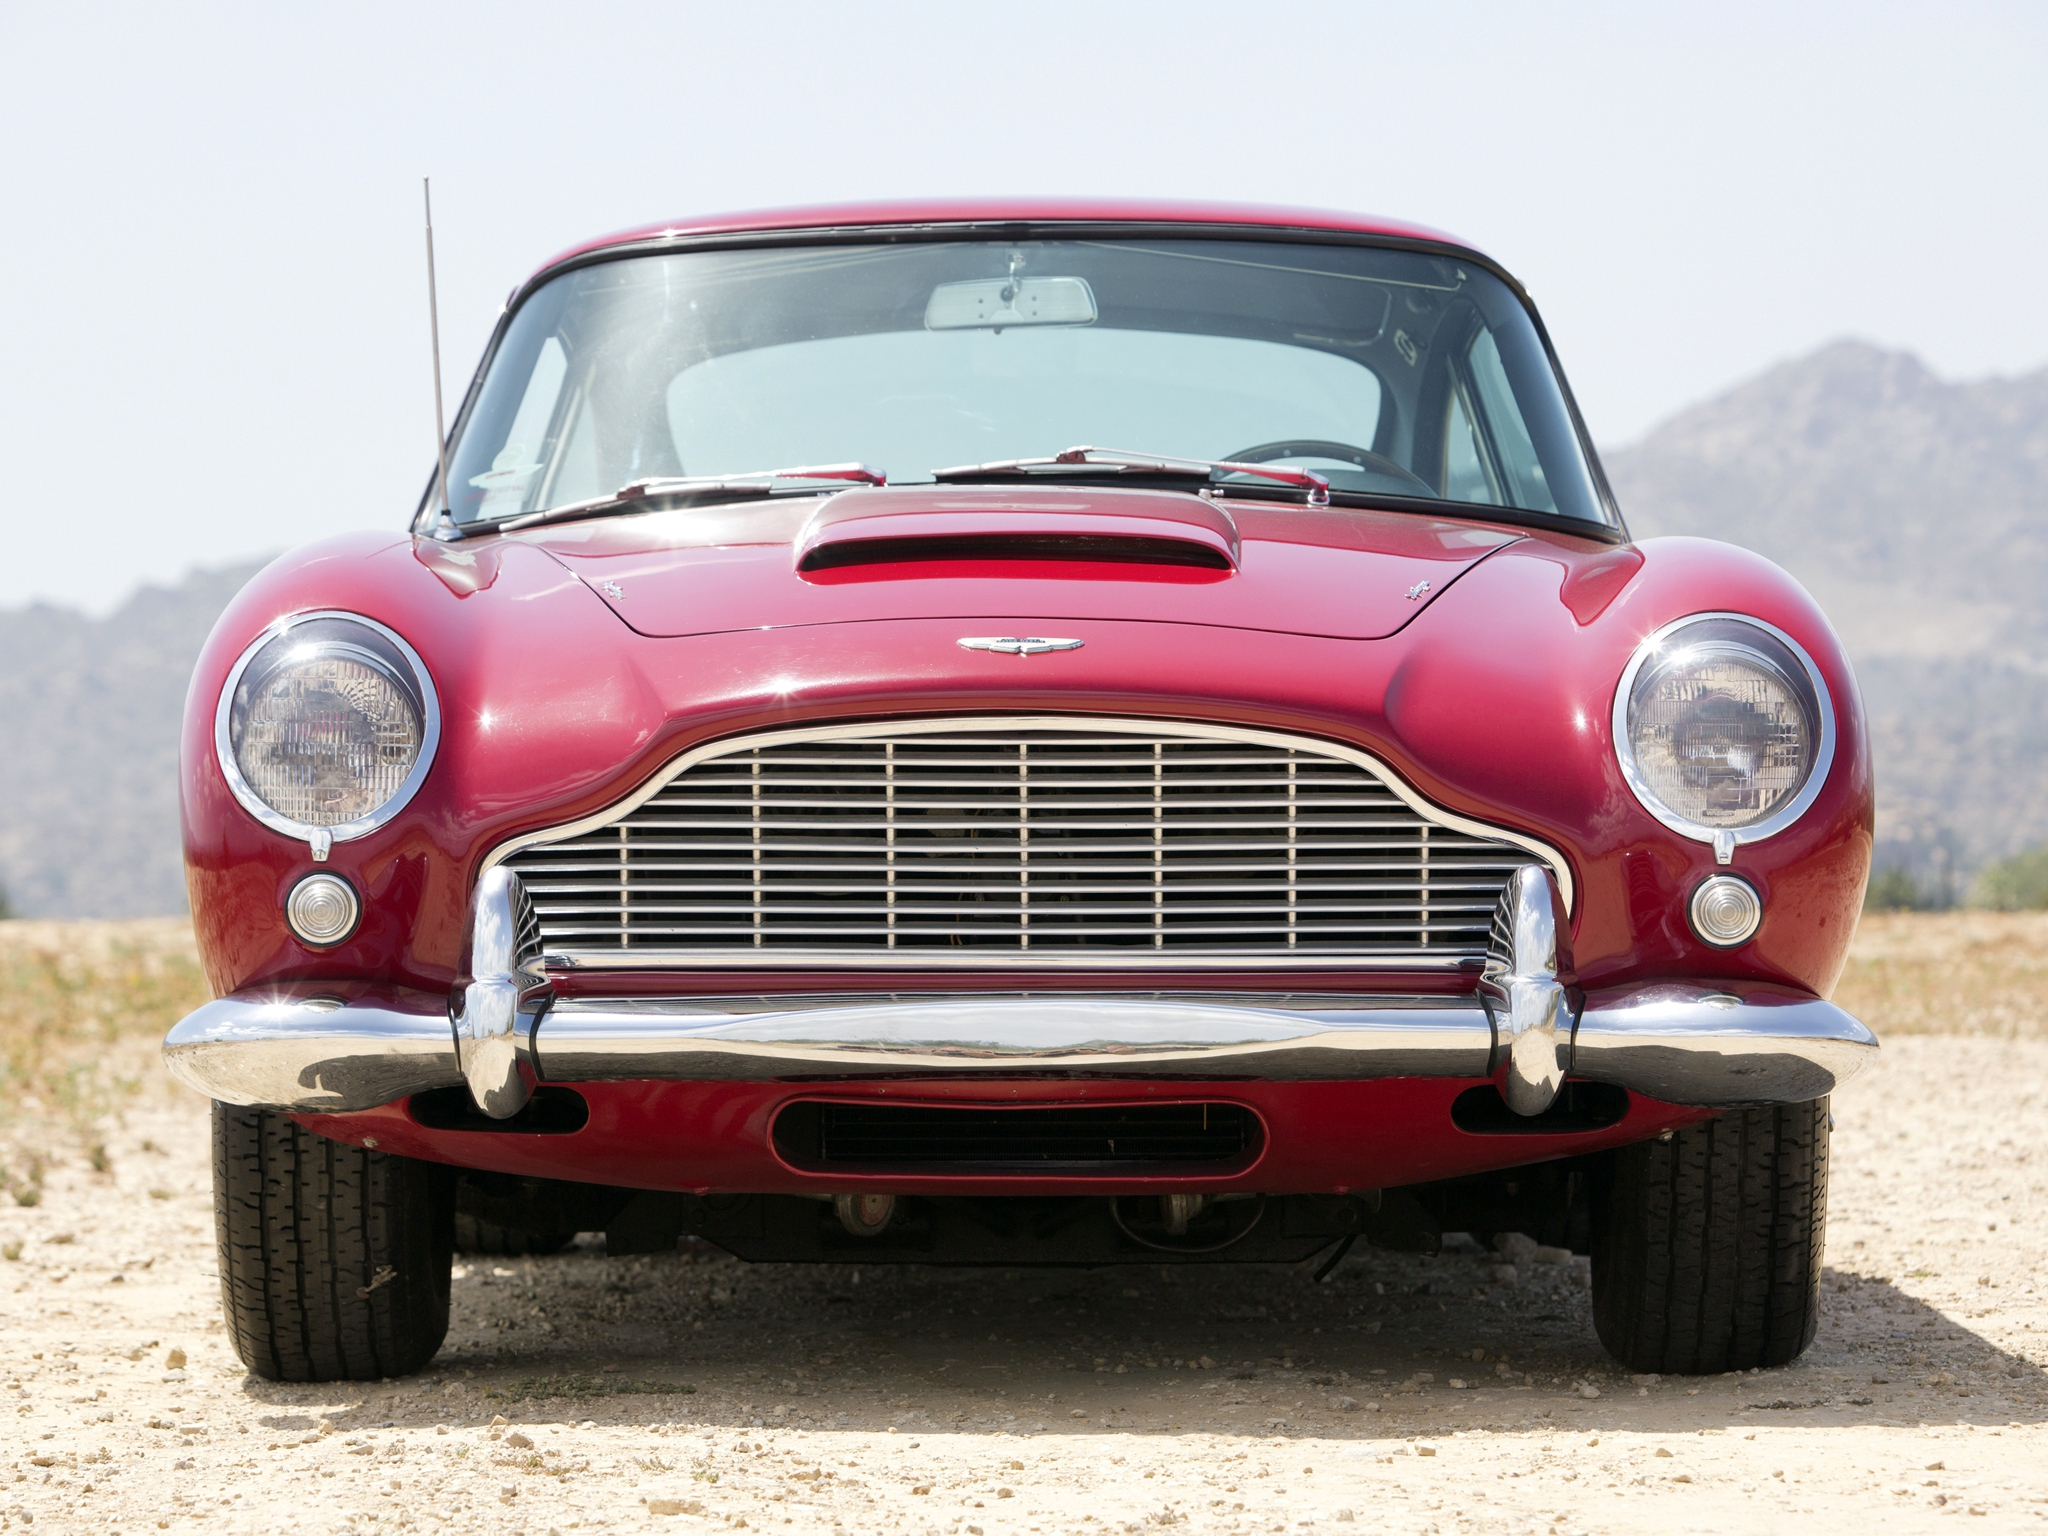 Aston Martin Db5 Hd Wallpaper